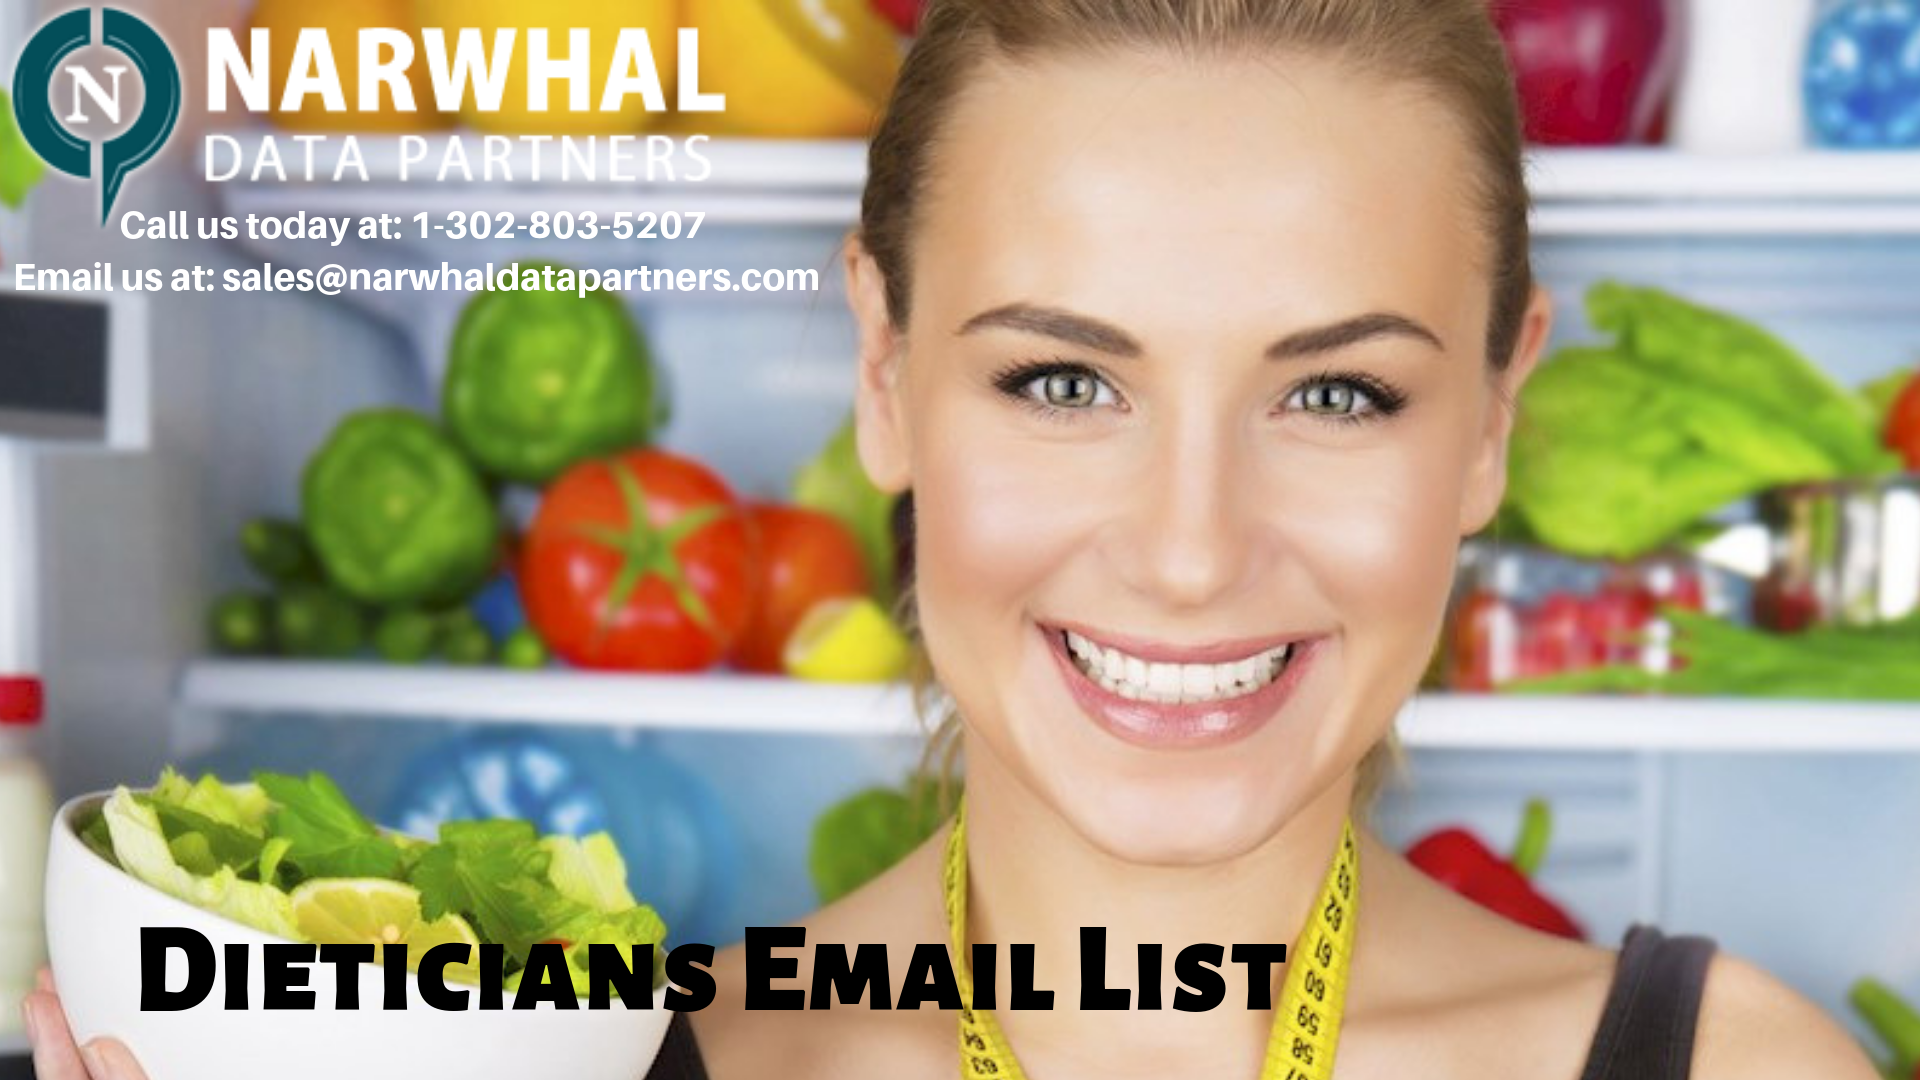 http://narwhaldatapartners.com/dieticians-email-list.html